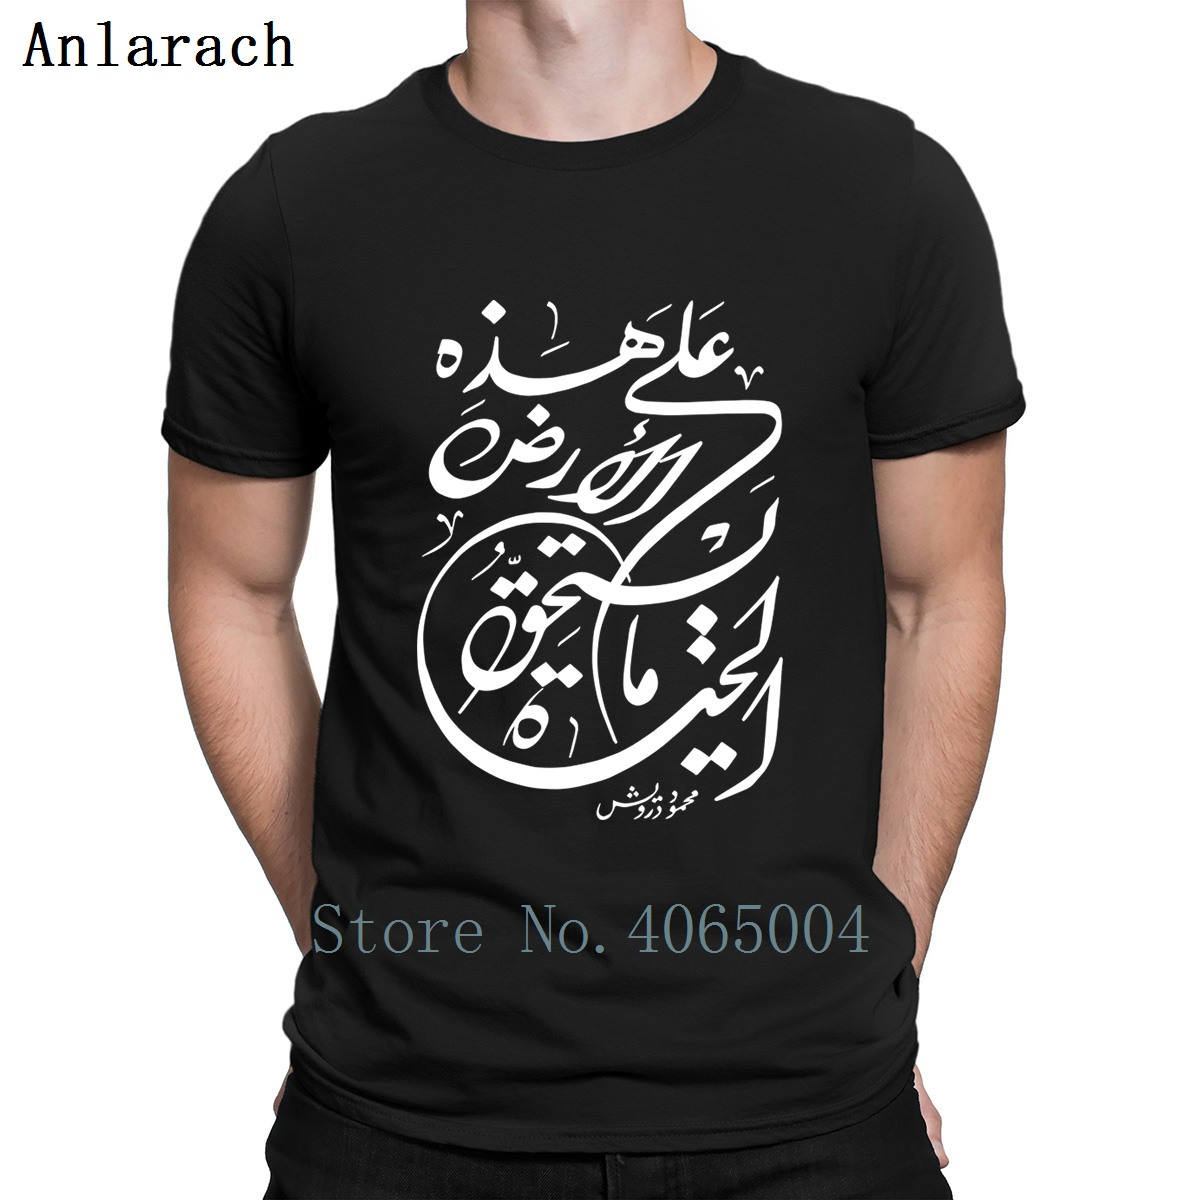 Arabic Calligraphy T Shirt Fit Normal Summer Style Building S-XXXL Pictures Design Cotton Shirt